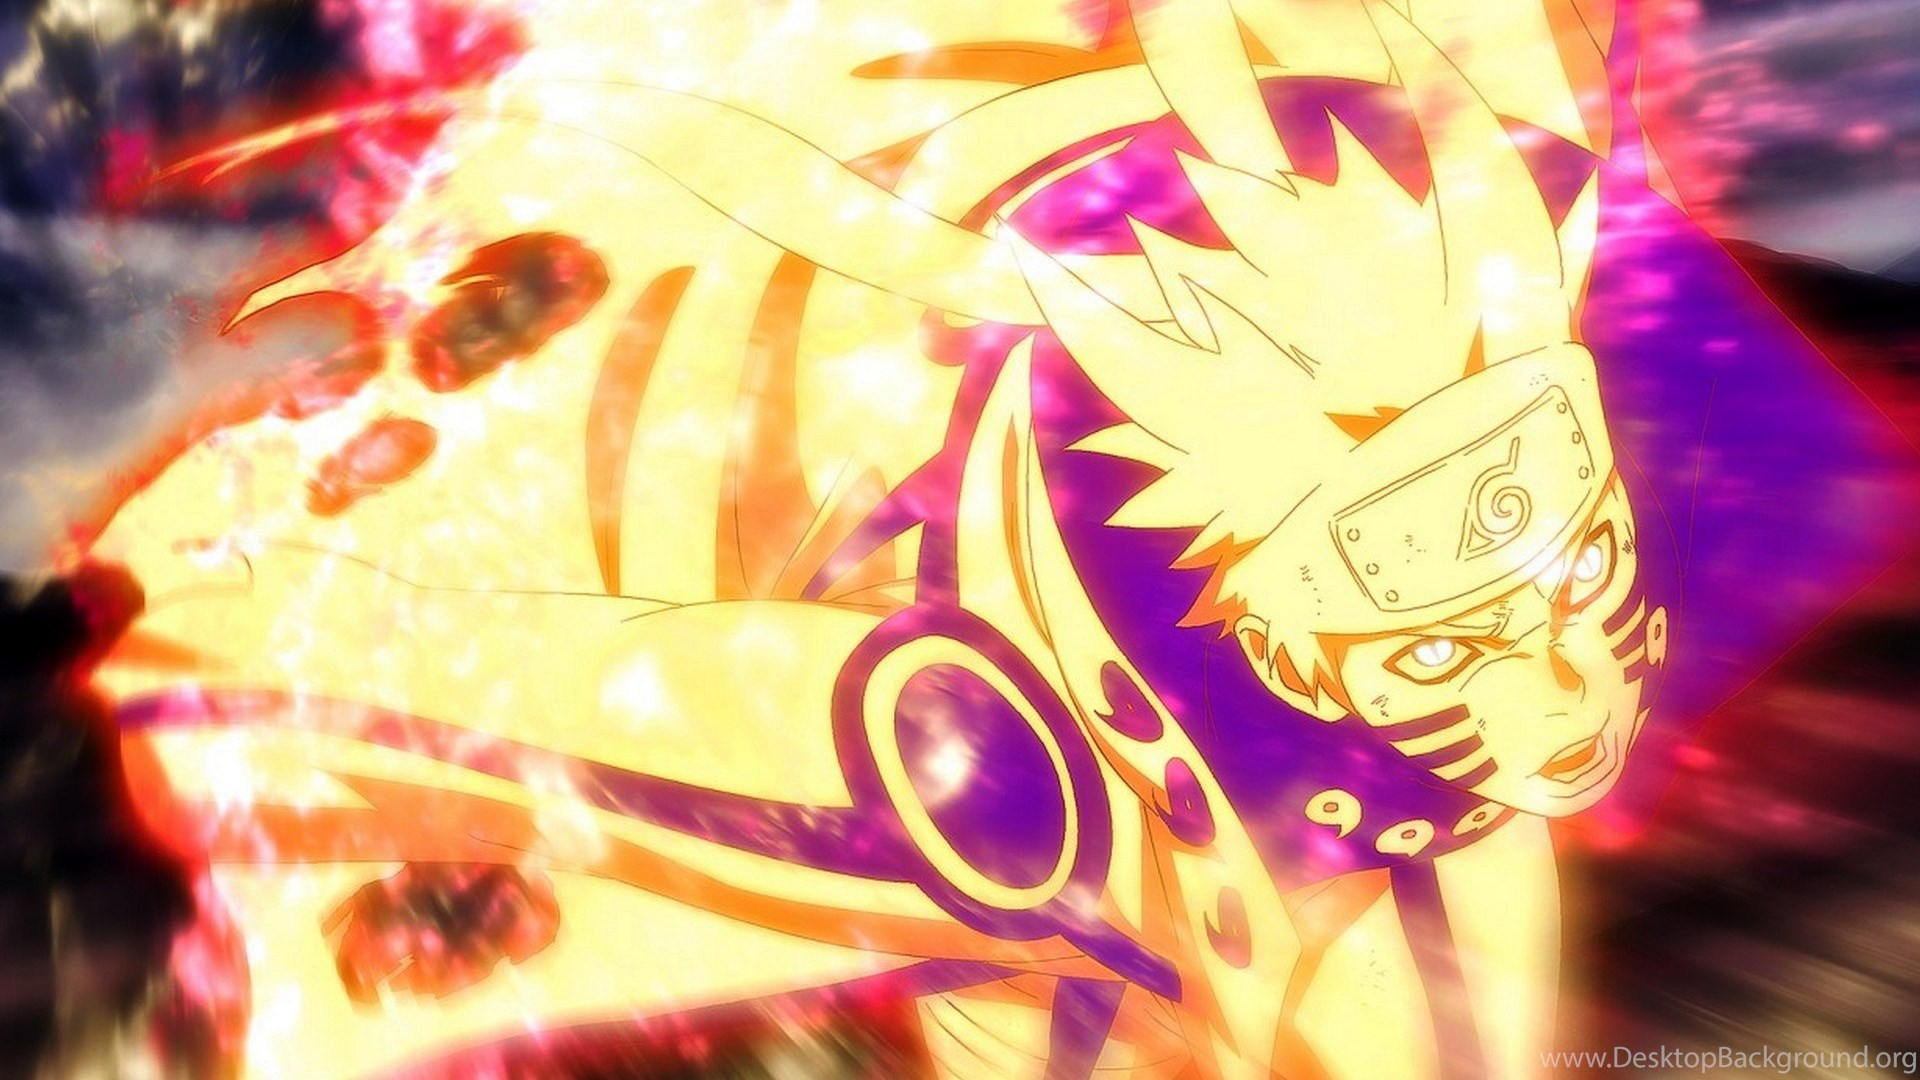 Hd Great Naruto Shippuden Wallpapers For Desktop Full Size